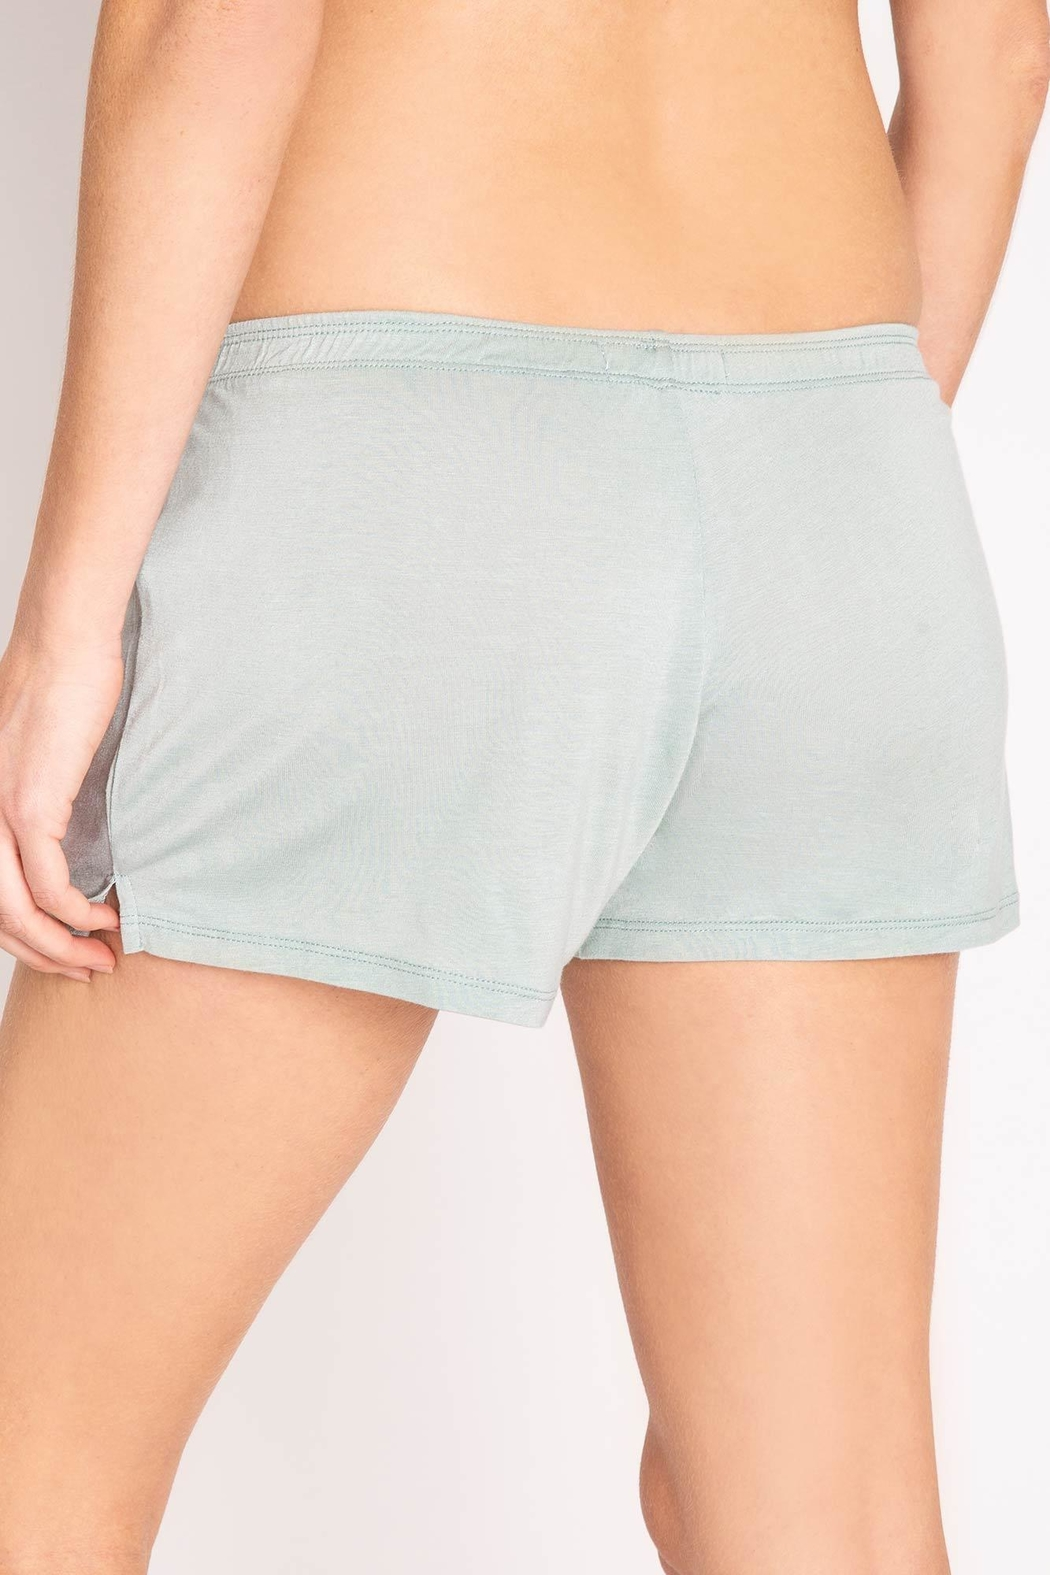 PJ Salvage Pj Button Shorts - Side Cropped Image